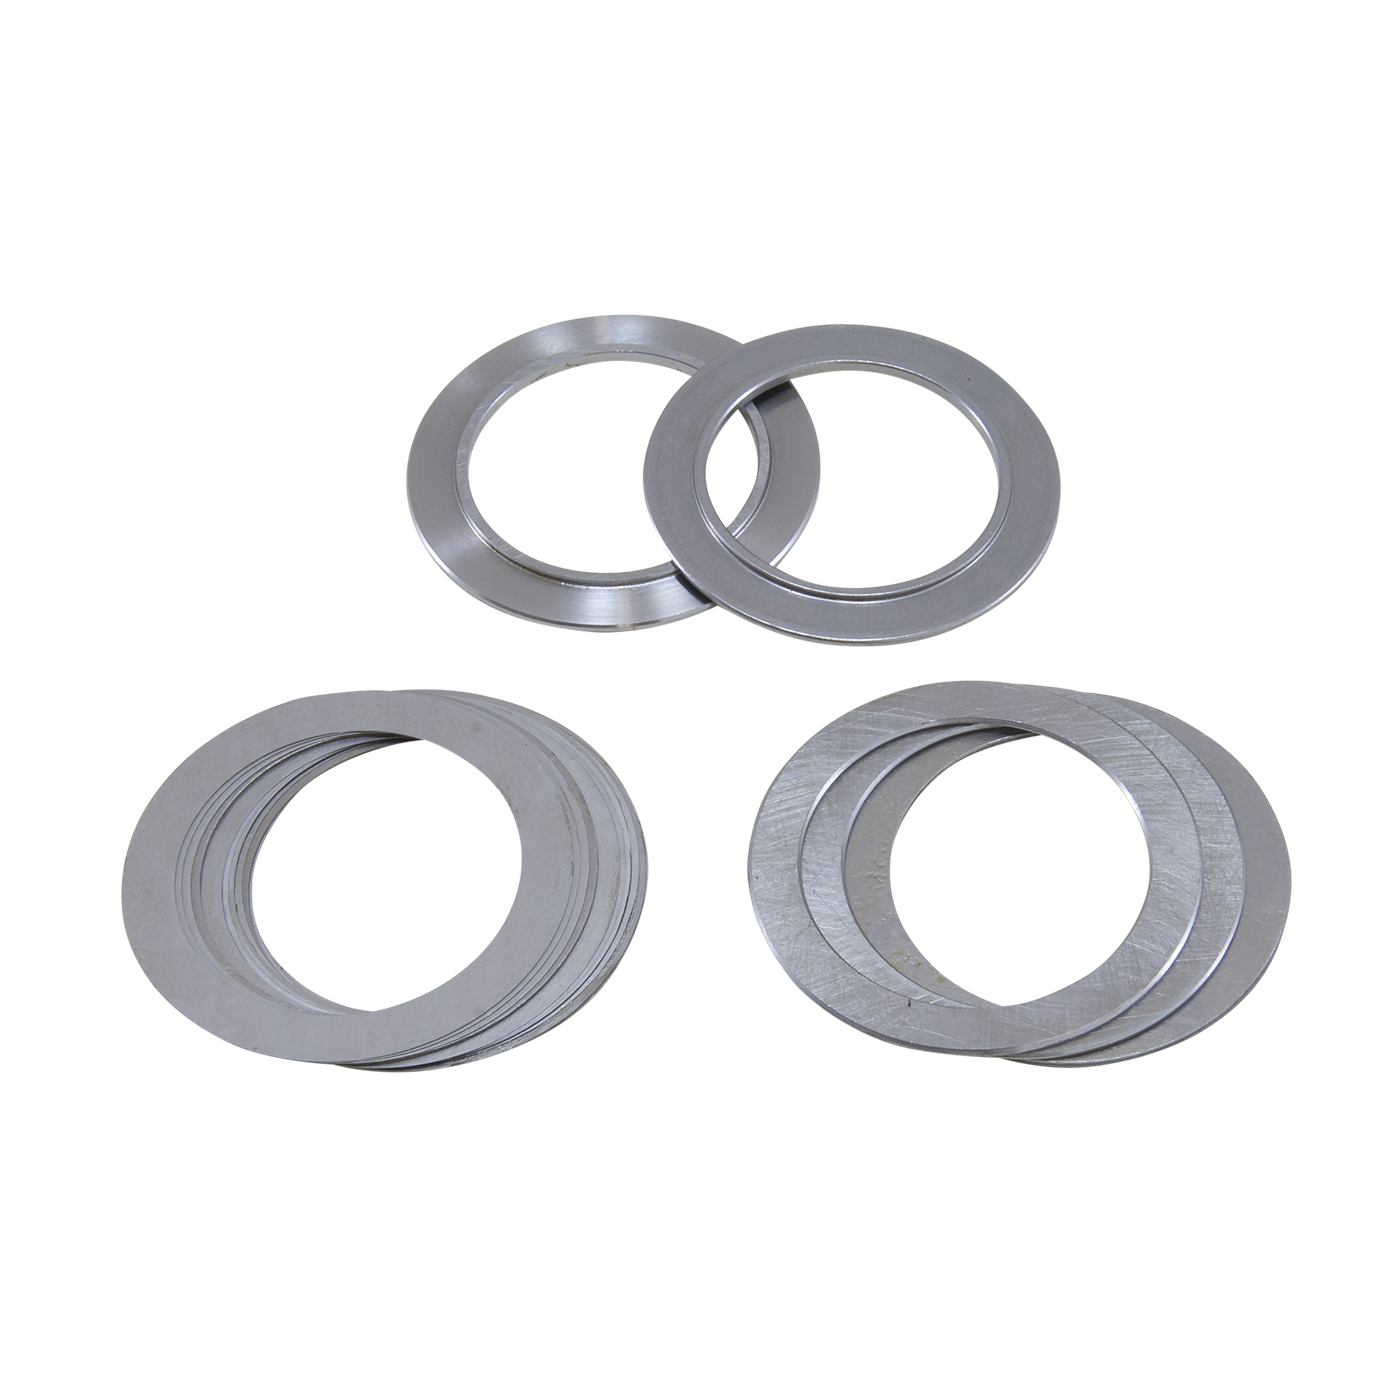 SK SSM35 - Super Carrier Shim kit for Model 35